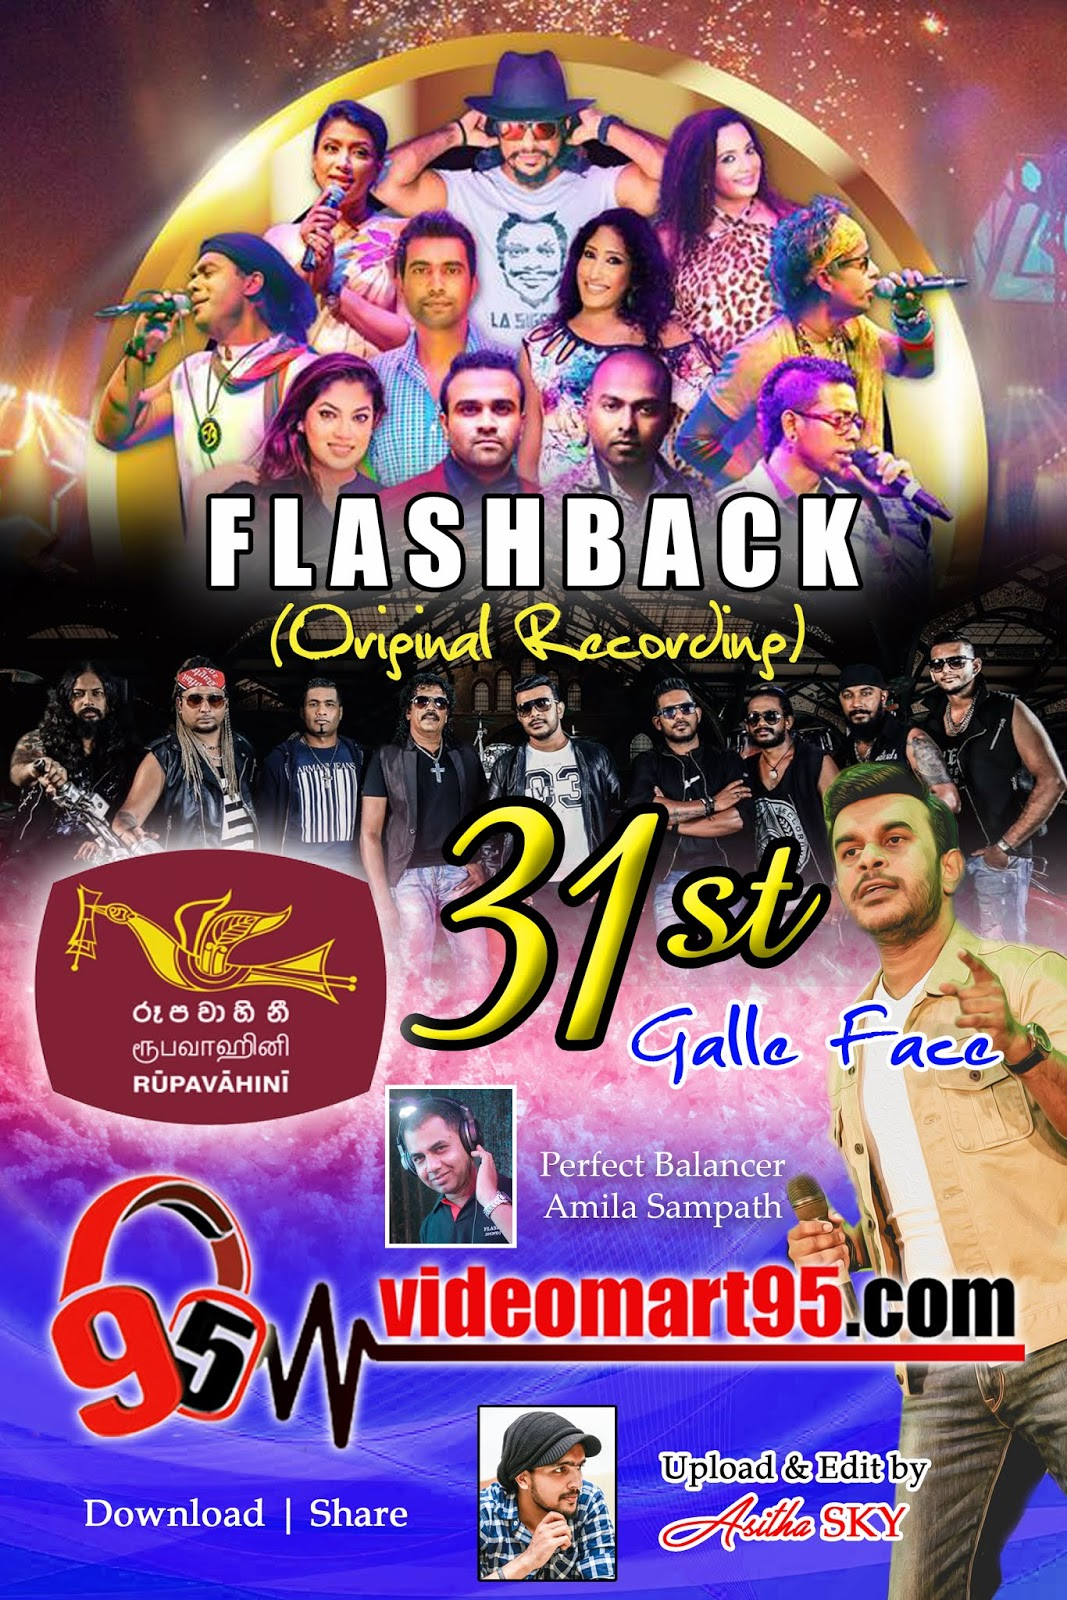 FLASH BACK 31st Night Gall Face 2018 - videomart95